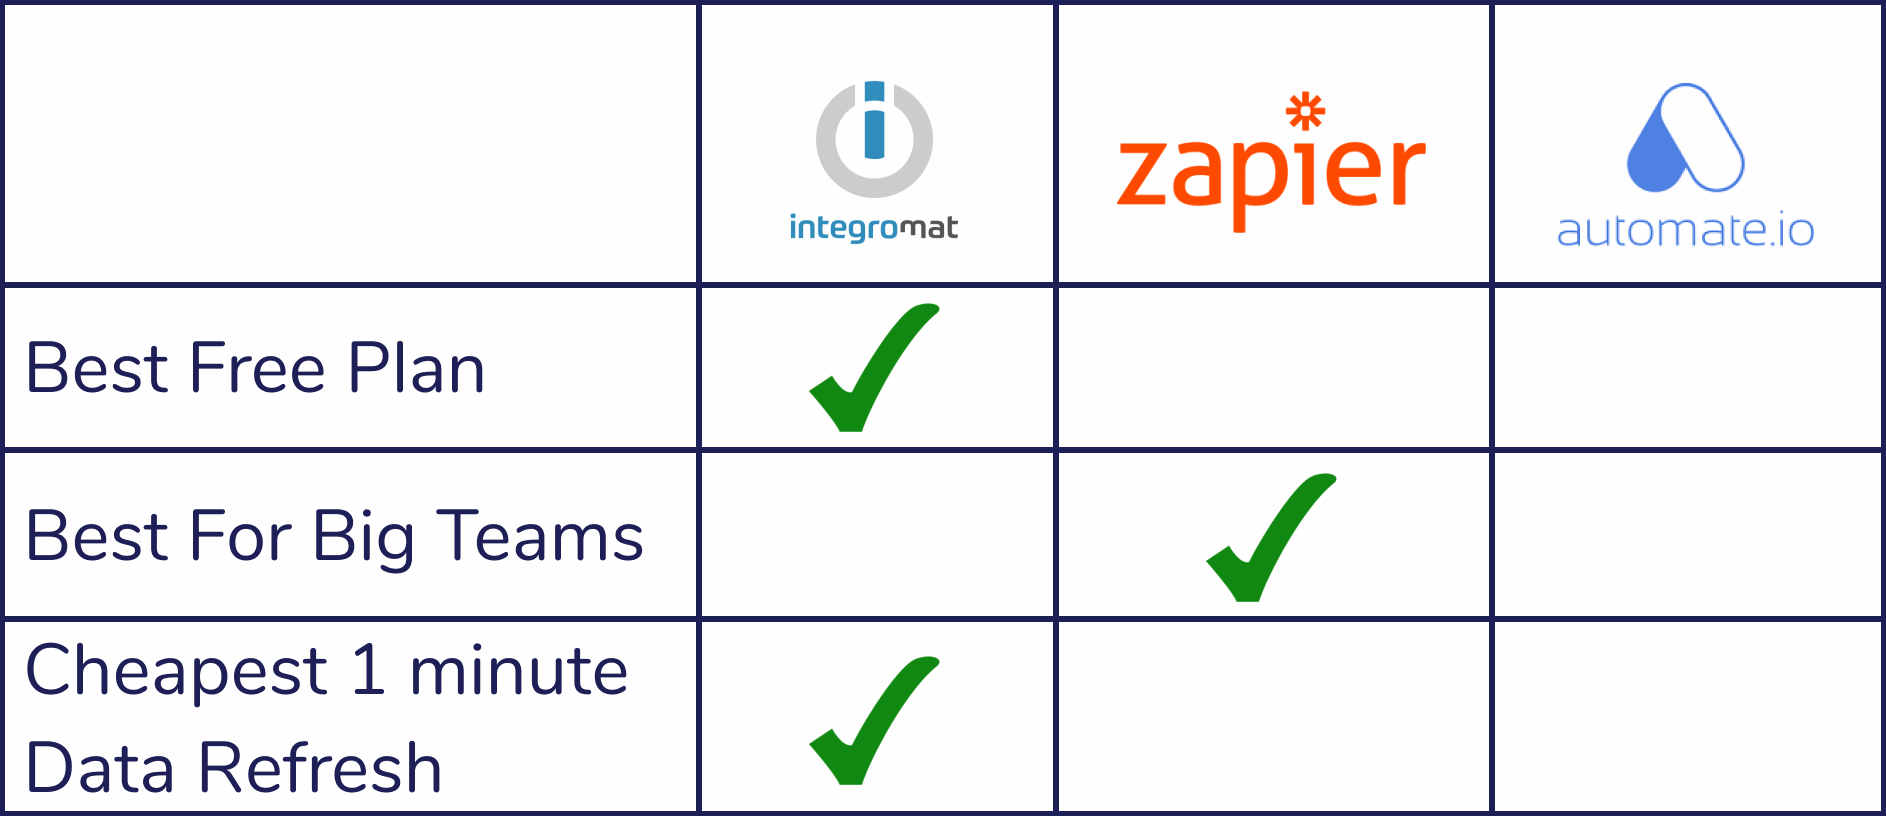 Simplified price comparison table of integromat, zapier and automate.io